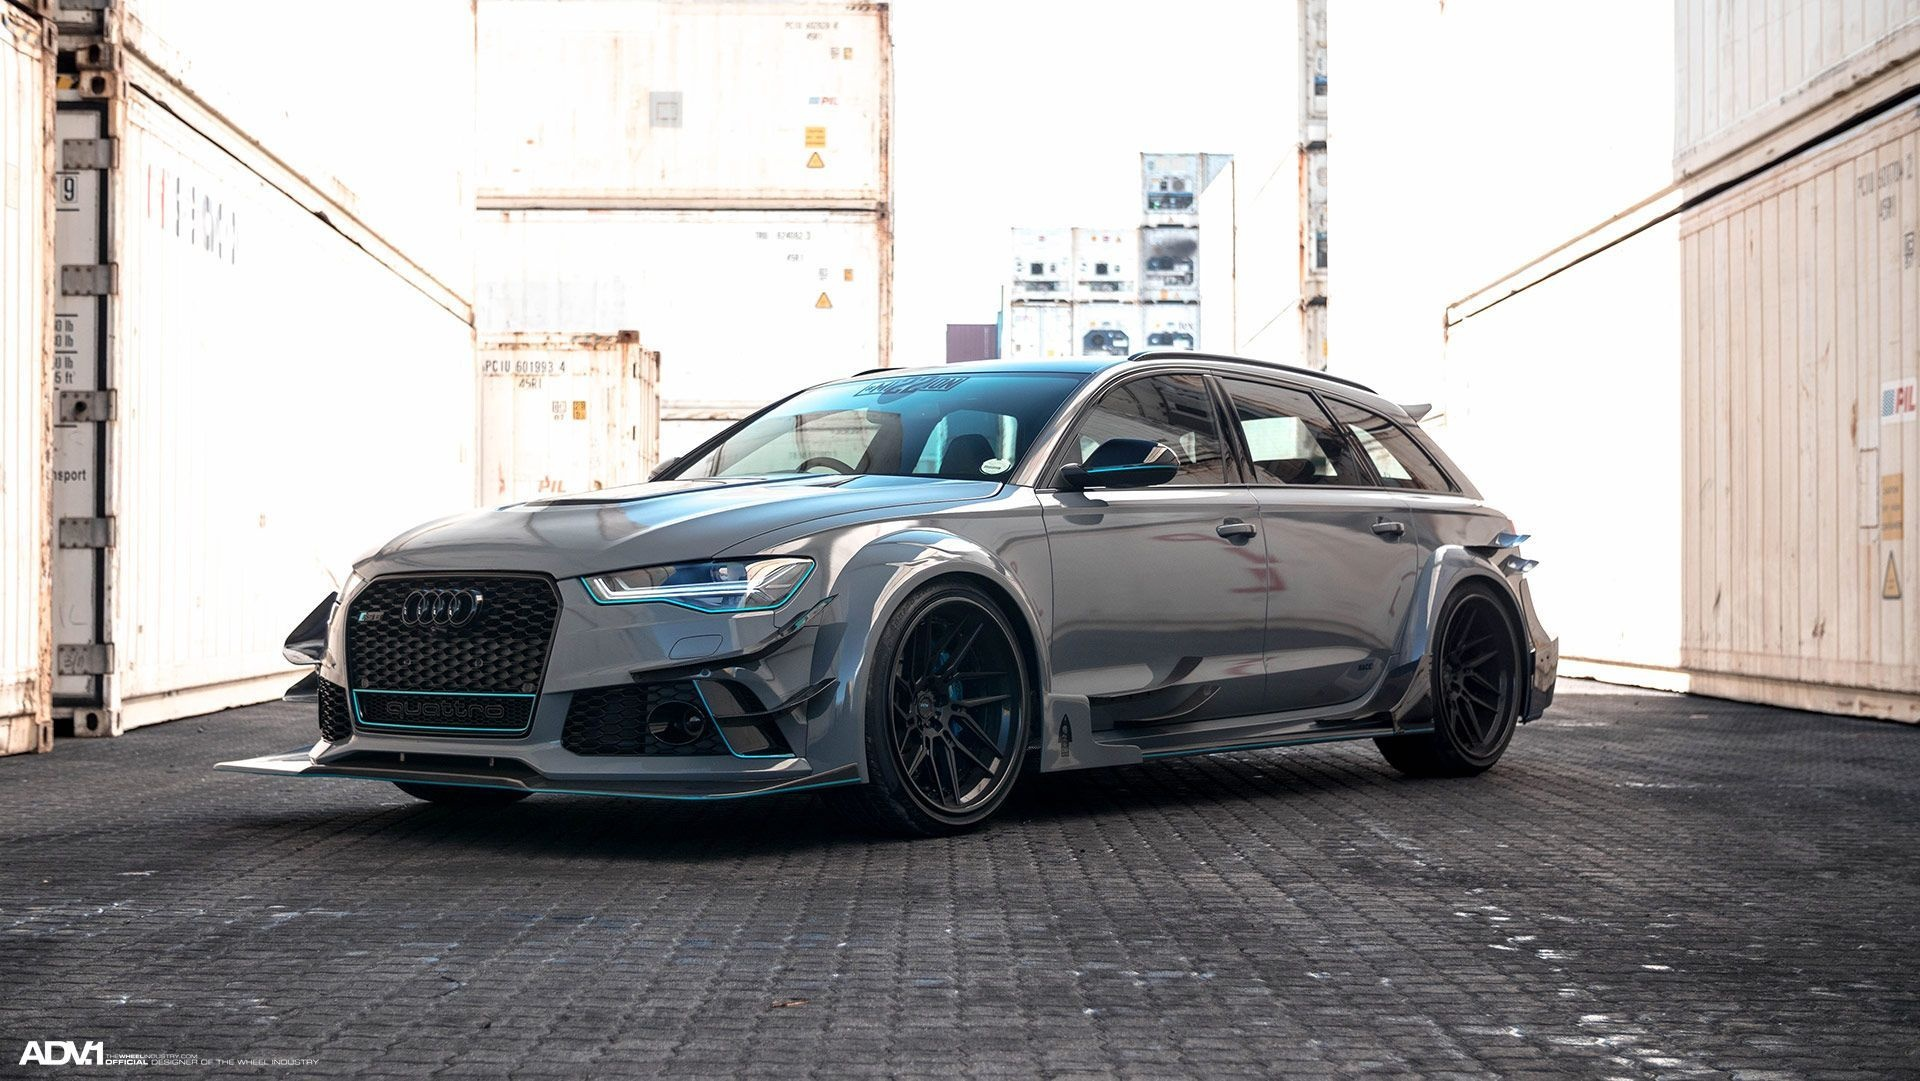 Audi Rs6 Modified Unique Widebody Audi Rs6 From south Africa Wants to Be A Dtm Racer Cars-1303 Of Inspirational Audi Rs6 Modified